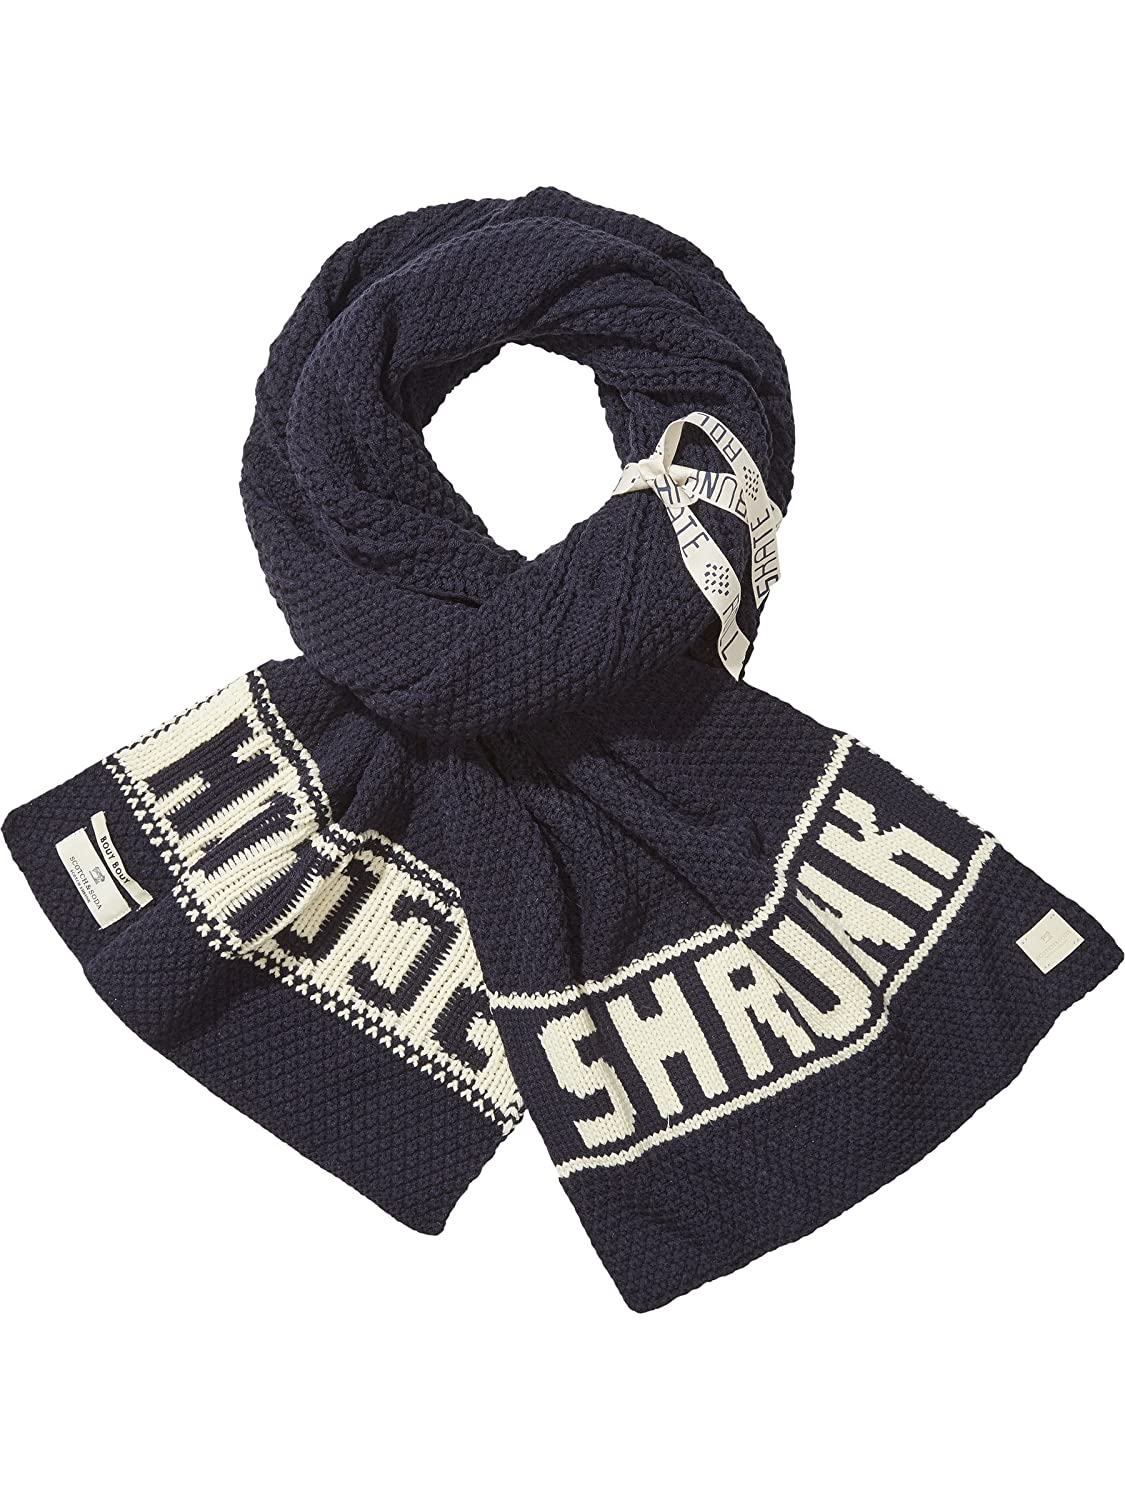 Scotch & Soda Shrunk Boy's Chunky Text Artwork Scarf, Blue (Night 002), One Size 140233